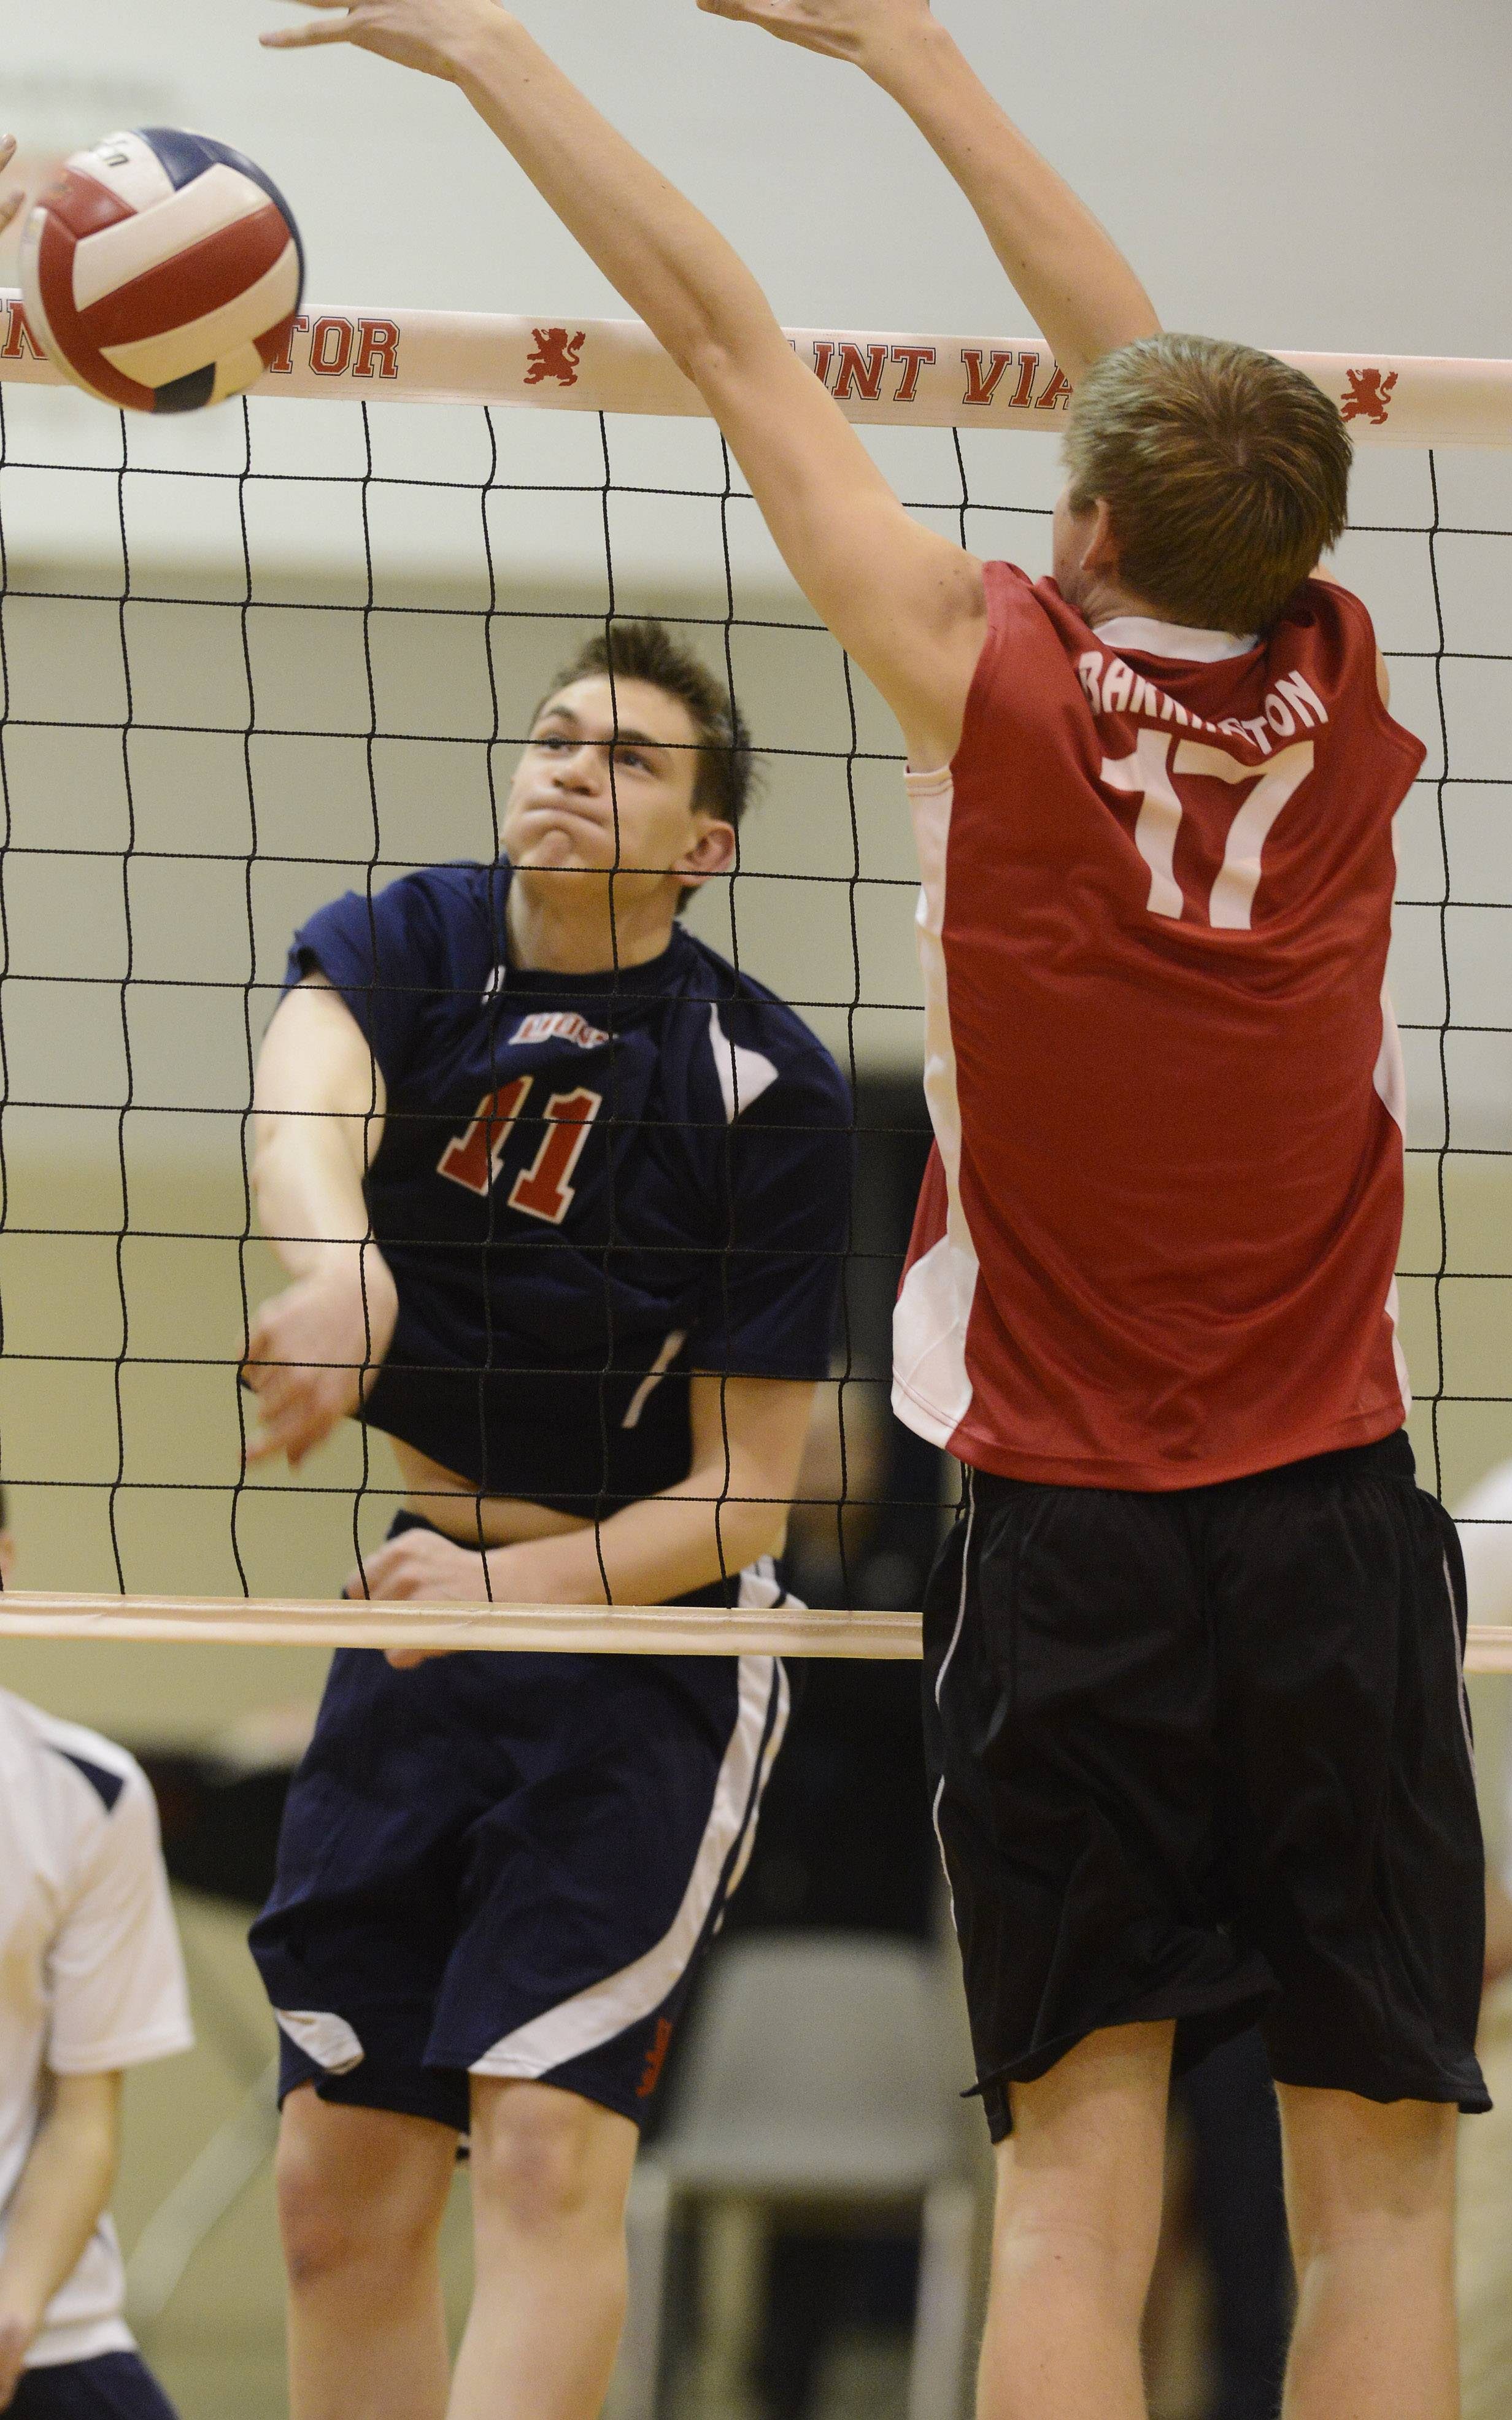 St. Viator's Ryan Schiller leaps for a kill as Barrington's Ethan Carroll, right, tries to block the ball at the net during Tuesday's boys volleyball game in Arlington Heights.